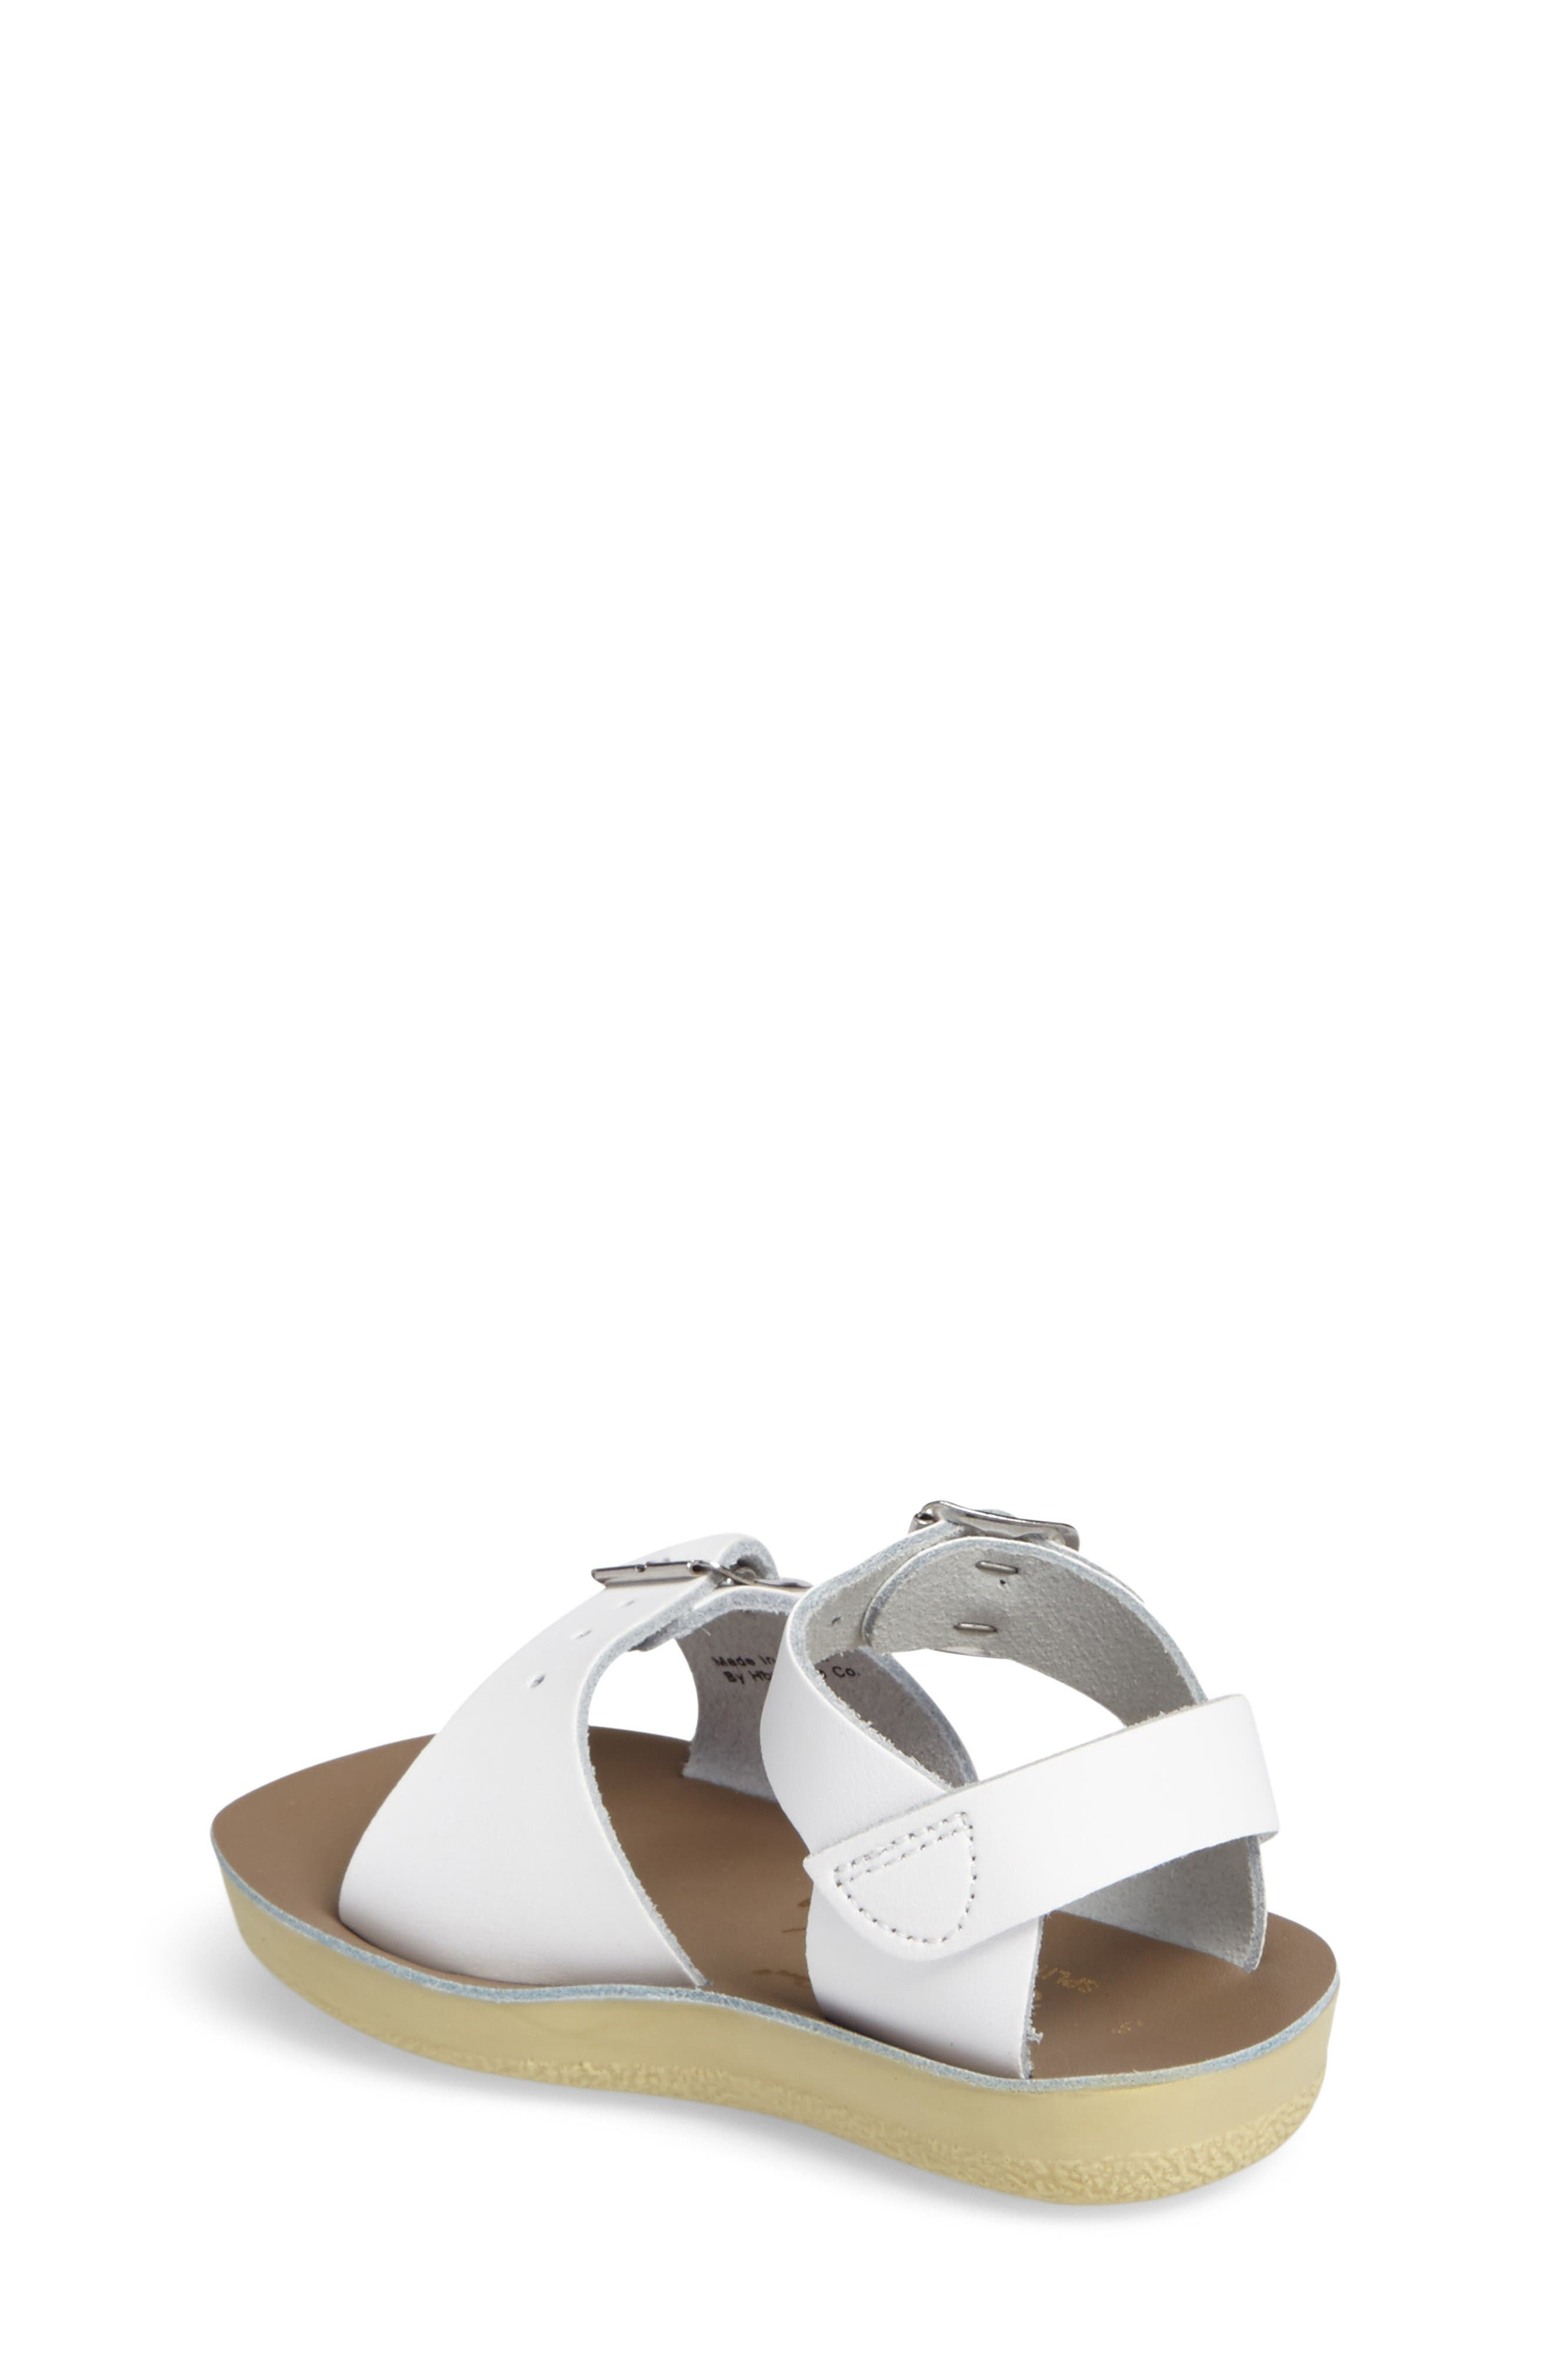 Alternate Image 2  - Salt Water Sandals by Hoy 'Surfer' Sandal (Baby, Walker, Toddler & Little Kid)